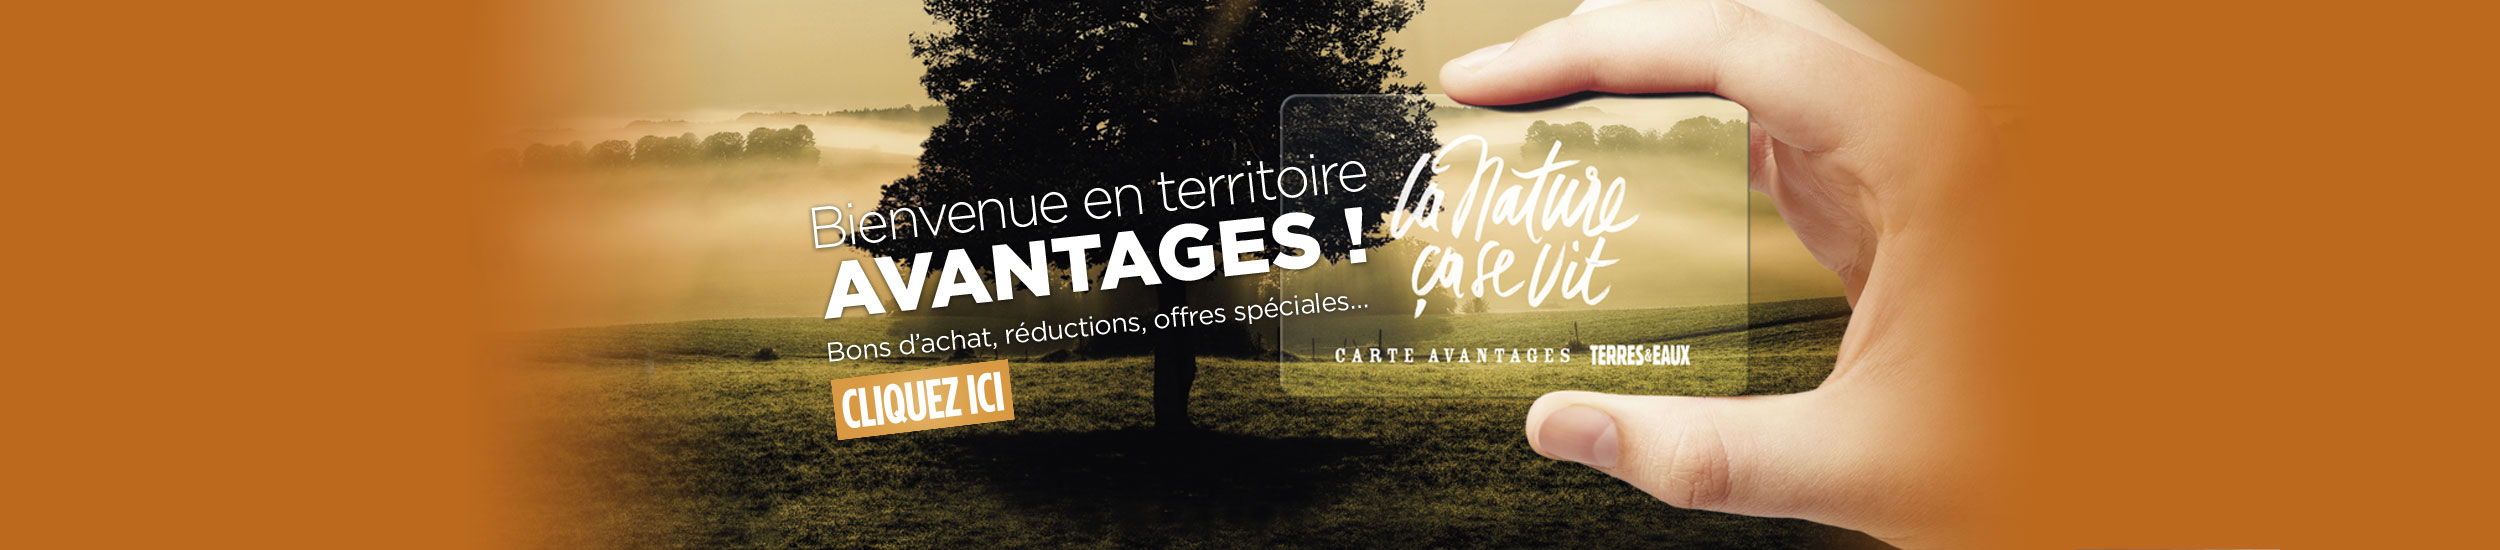 Carte Avantages - Animal & Préhome